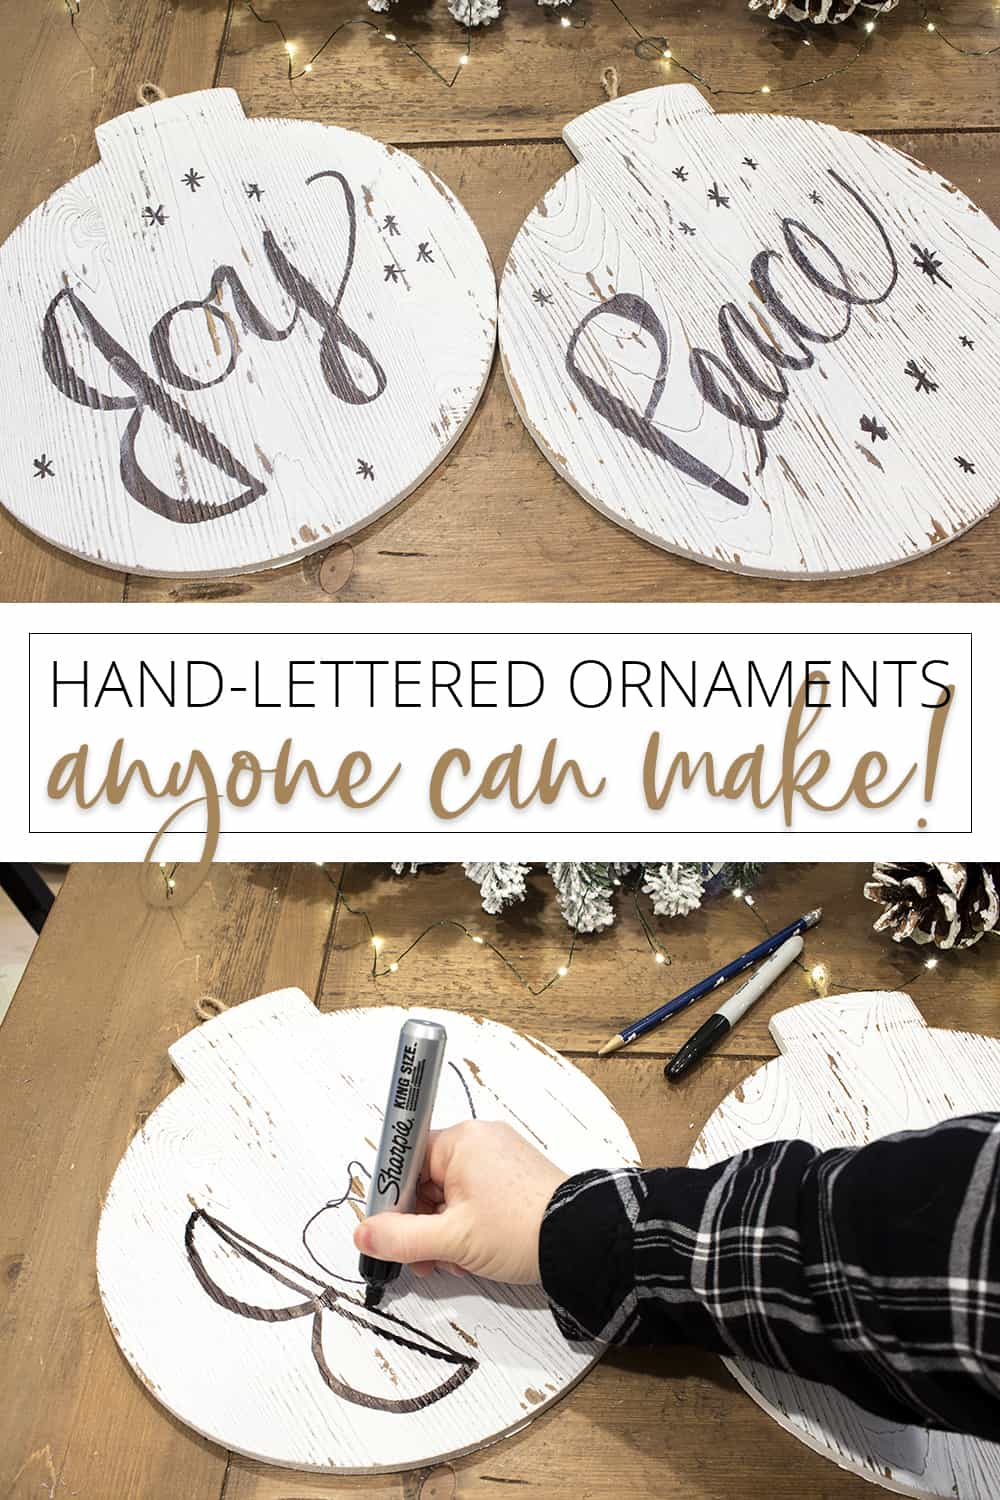 hand-lettered ornaments anyone can make